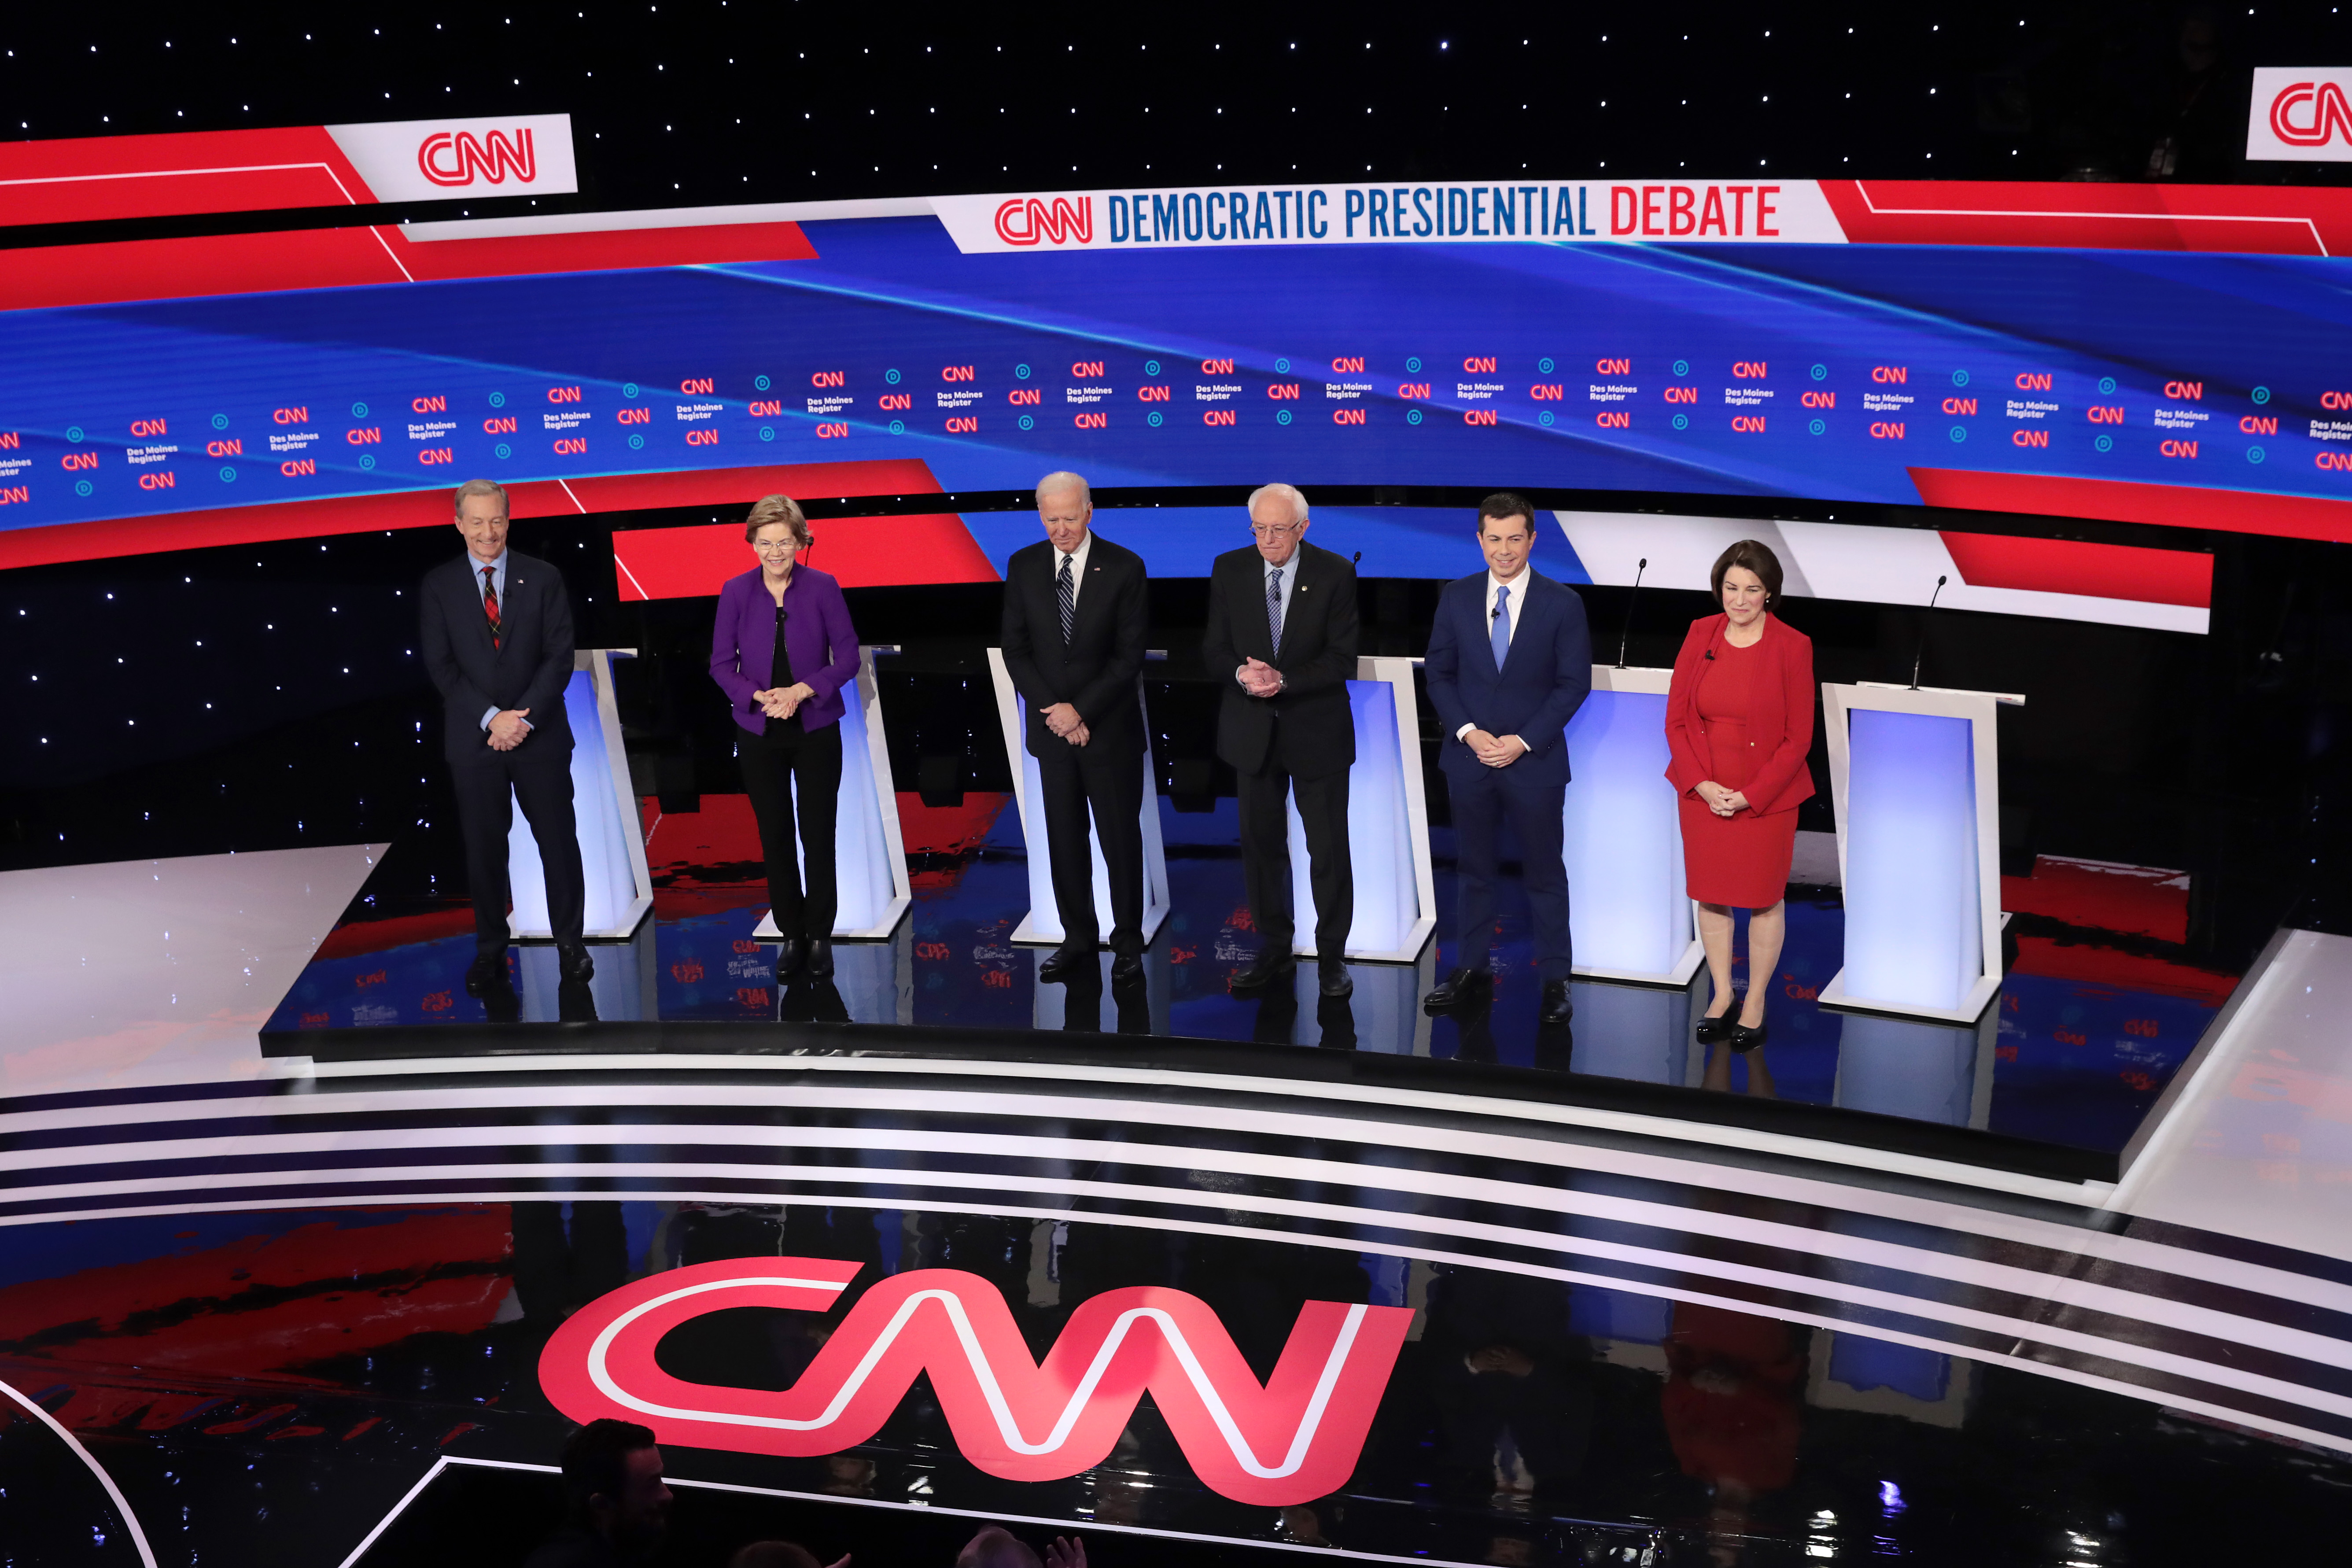 Six candidates in the Democratic presidential primary debated on Tuesday in Des Moines, Iowa.